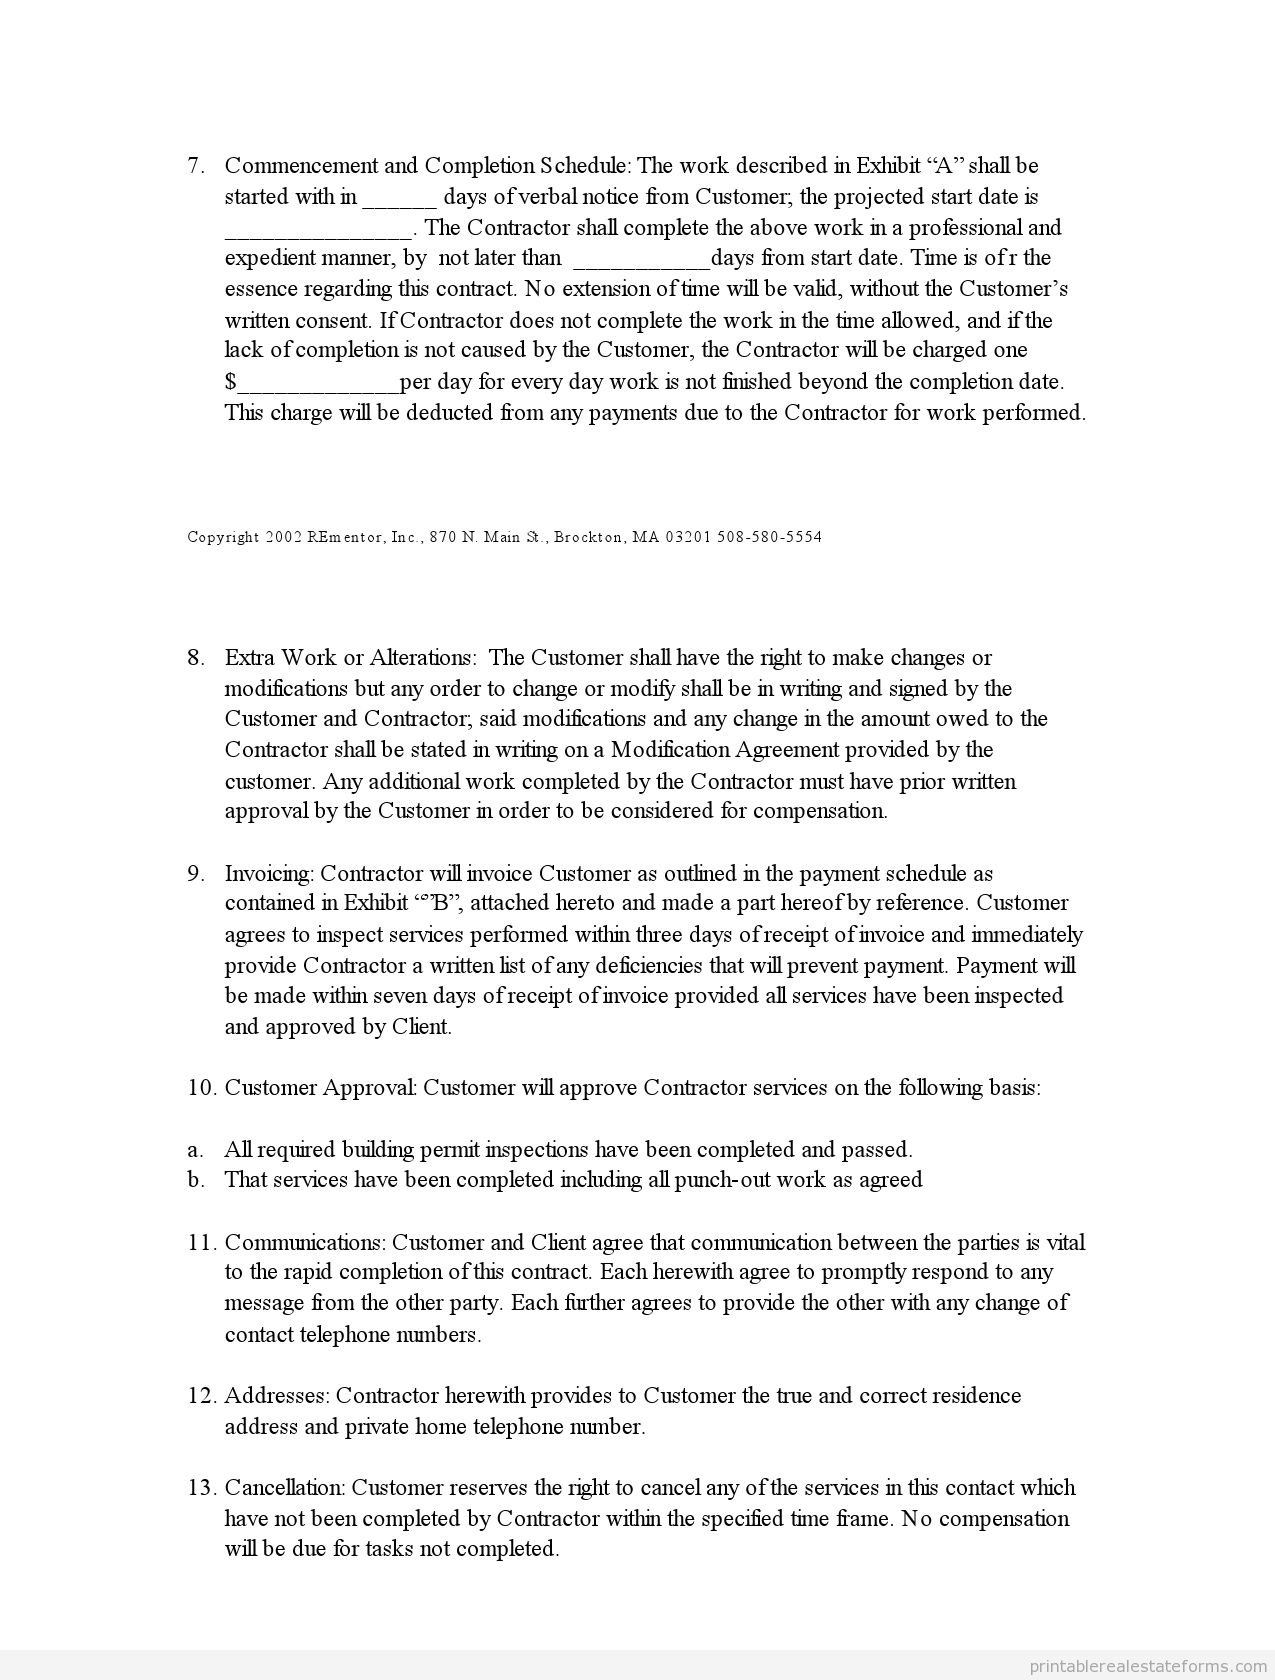 Sample Printable Indep Contractor Agreement 2 Form Real Estate Forms Legal Forms Real Estate Templates